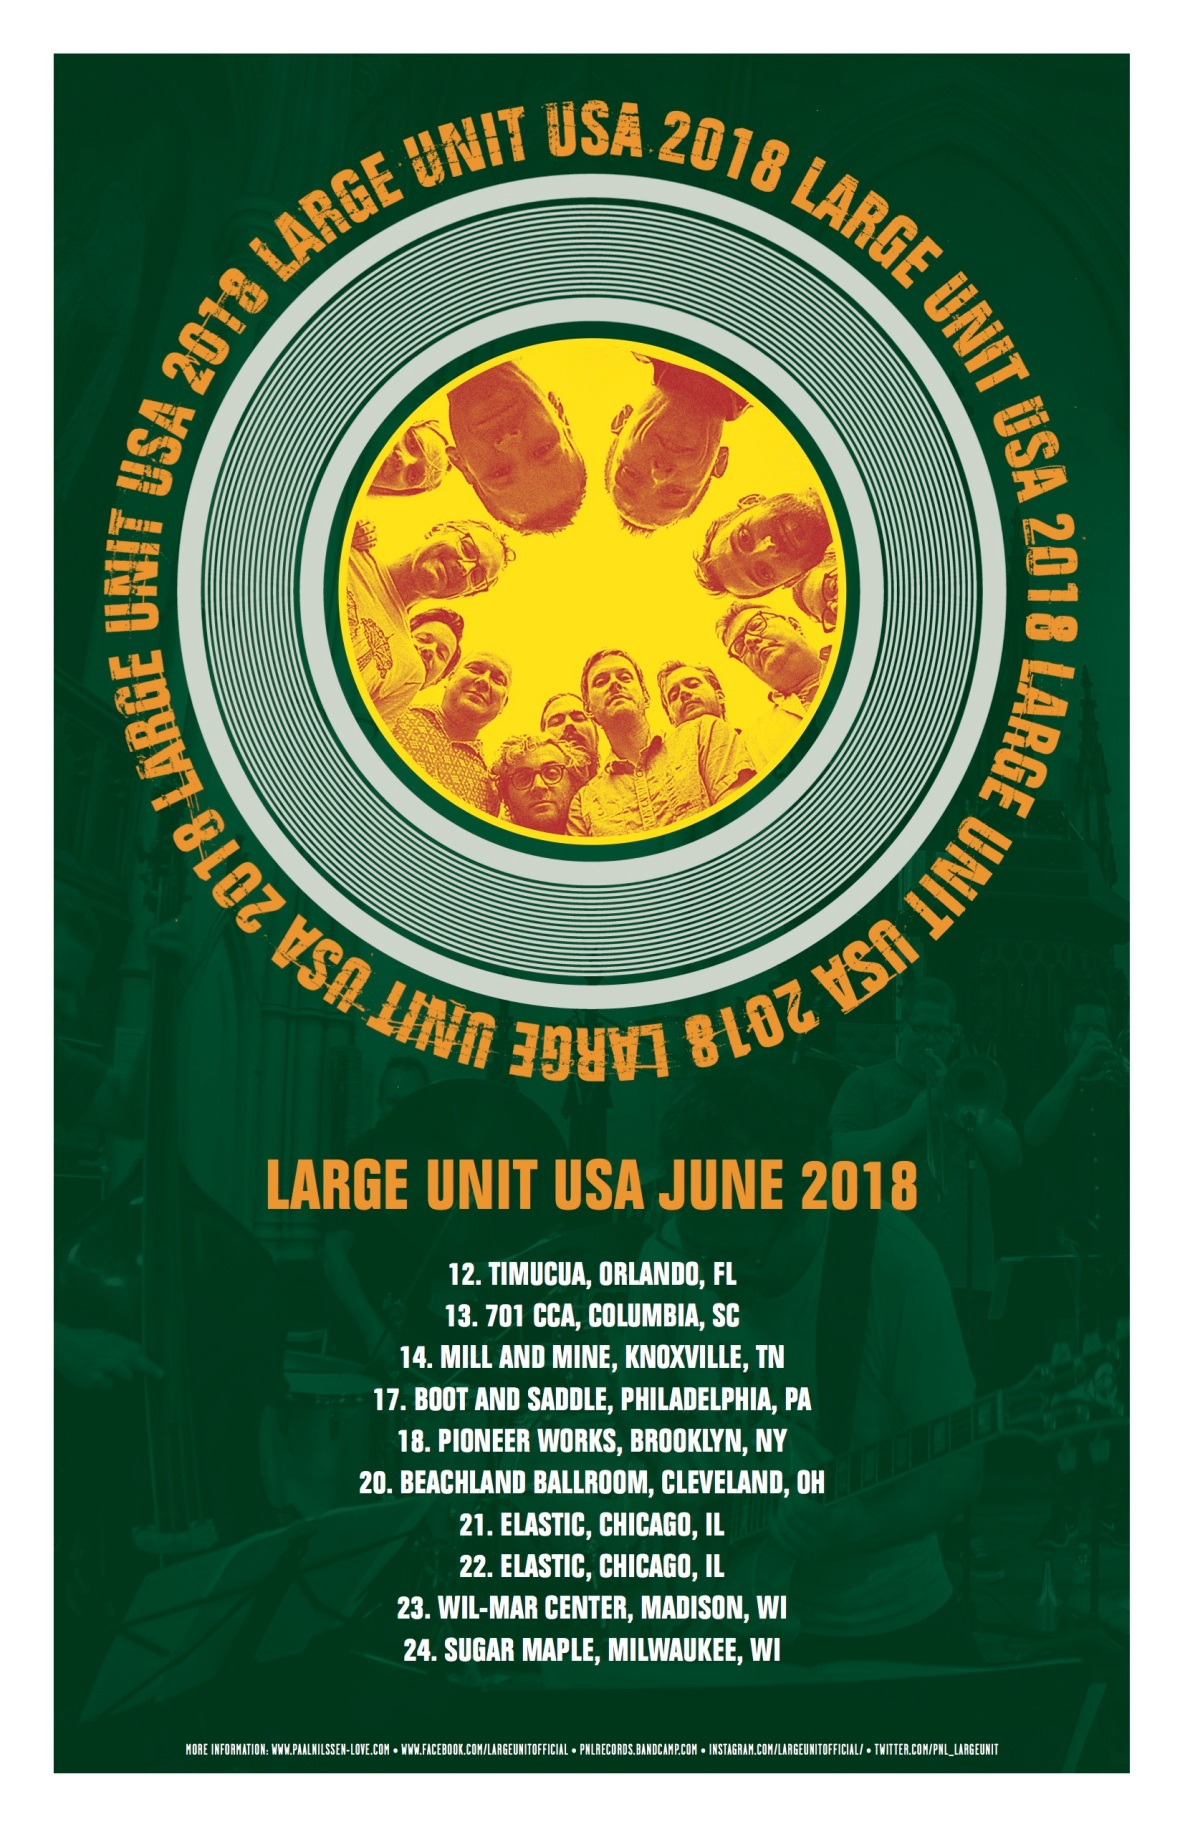 LargeUnitUSA2018_POSTER_dates